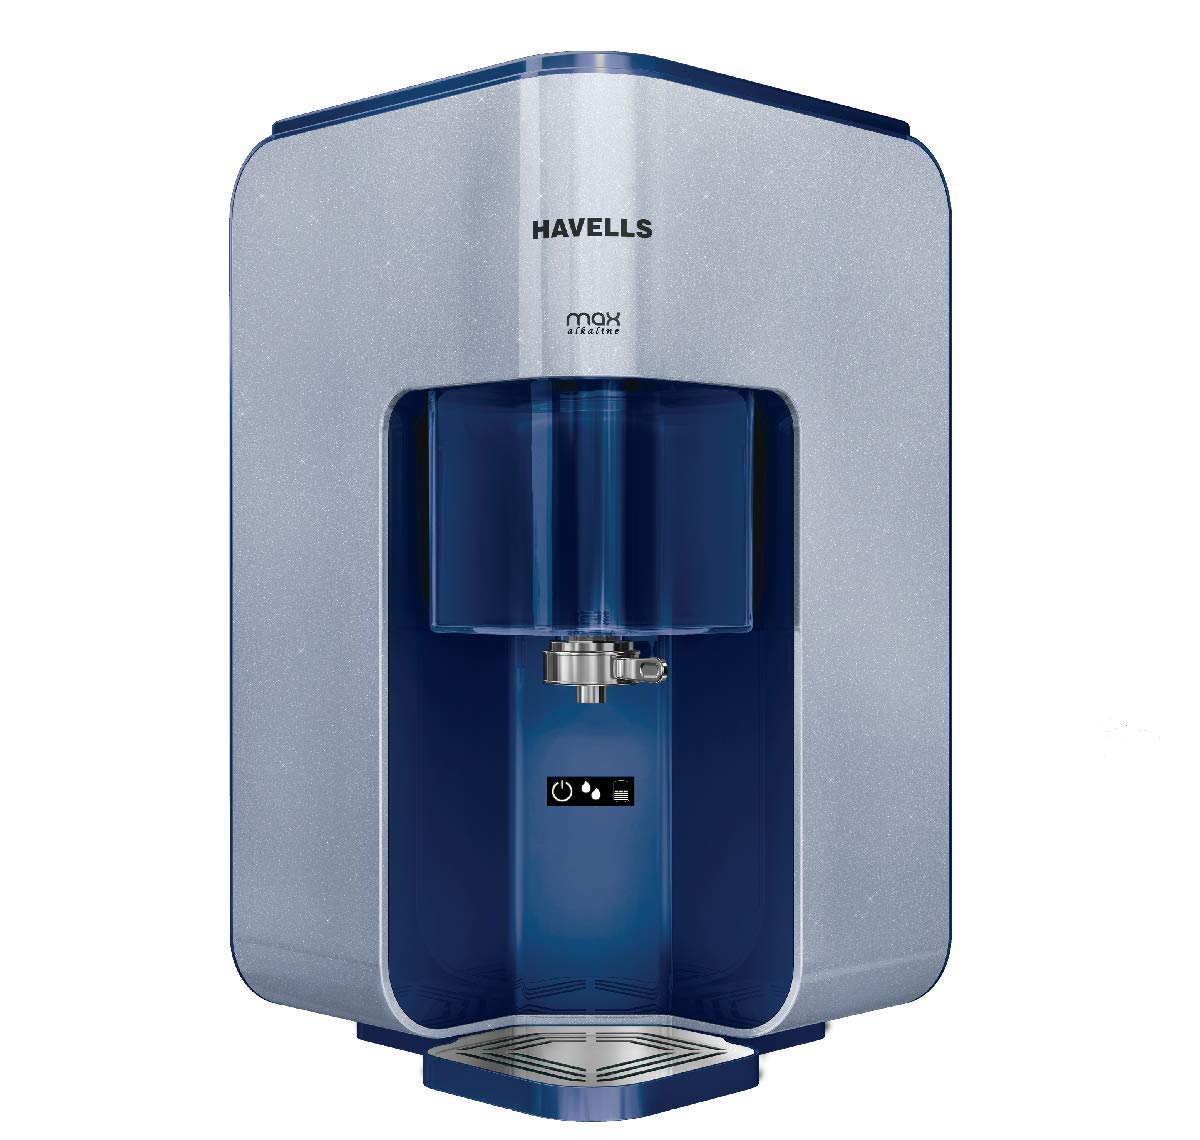 bore well water filter